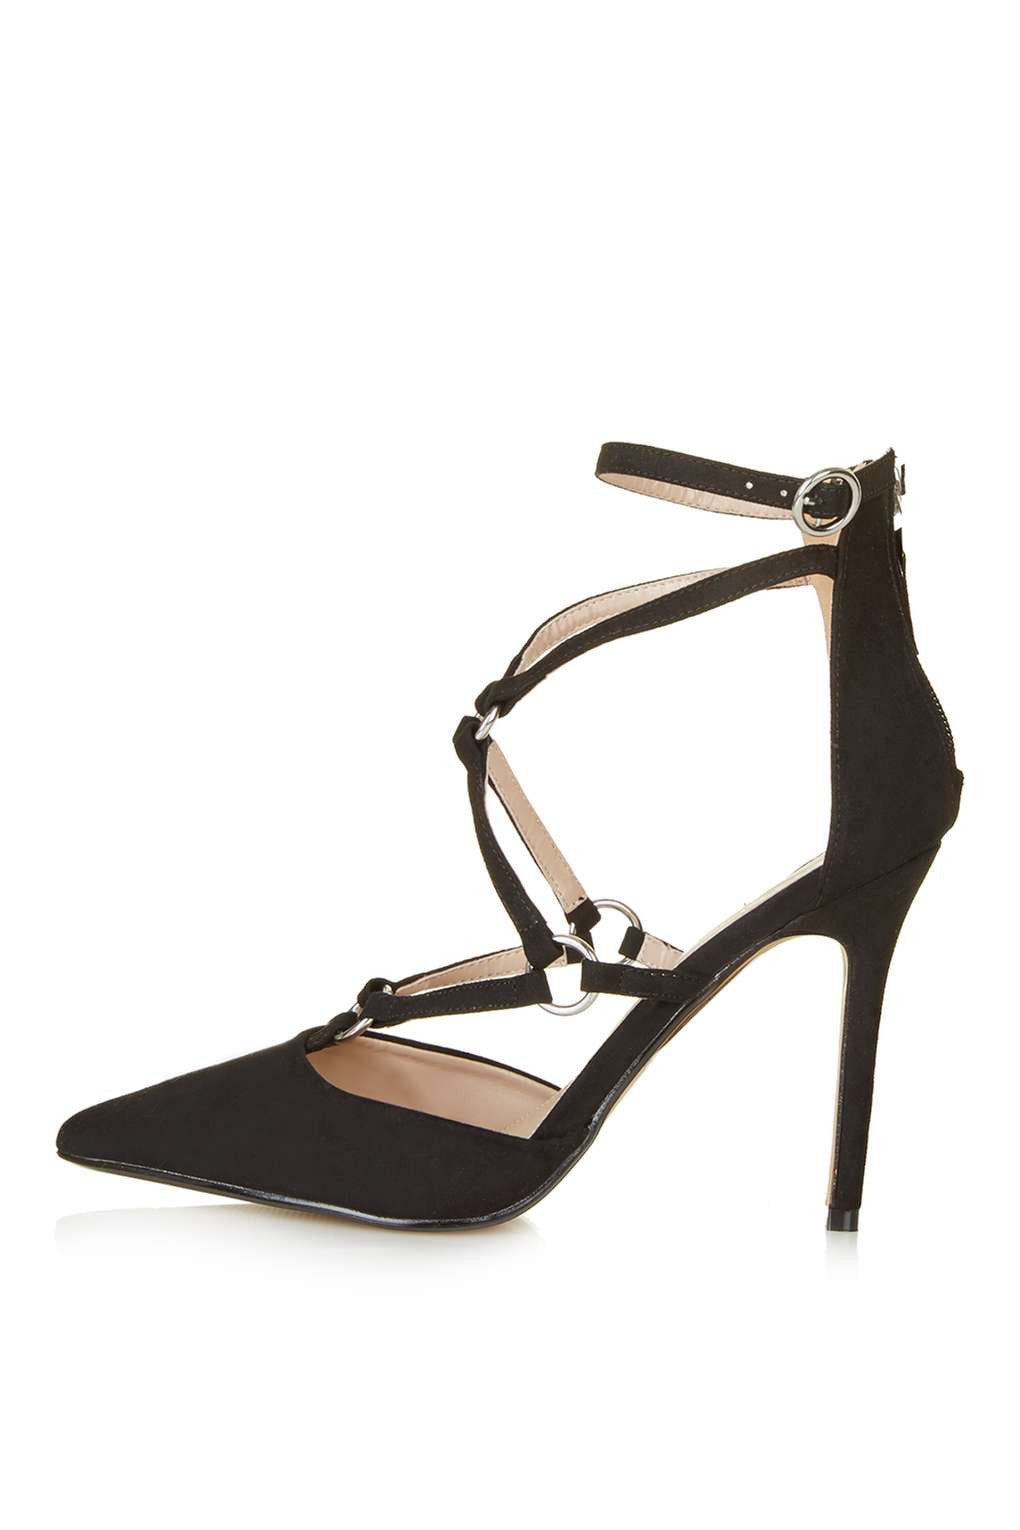 TopShop MARA Ring Strap Court Shoes